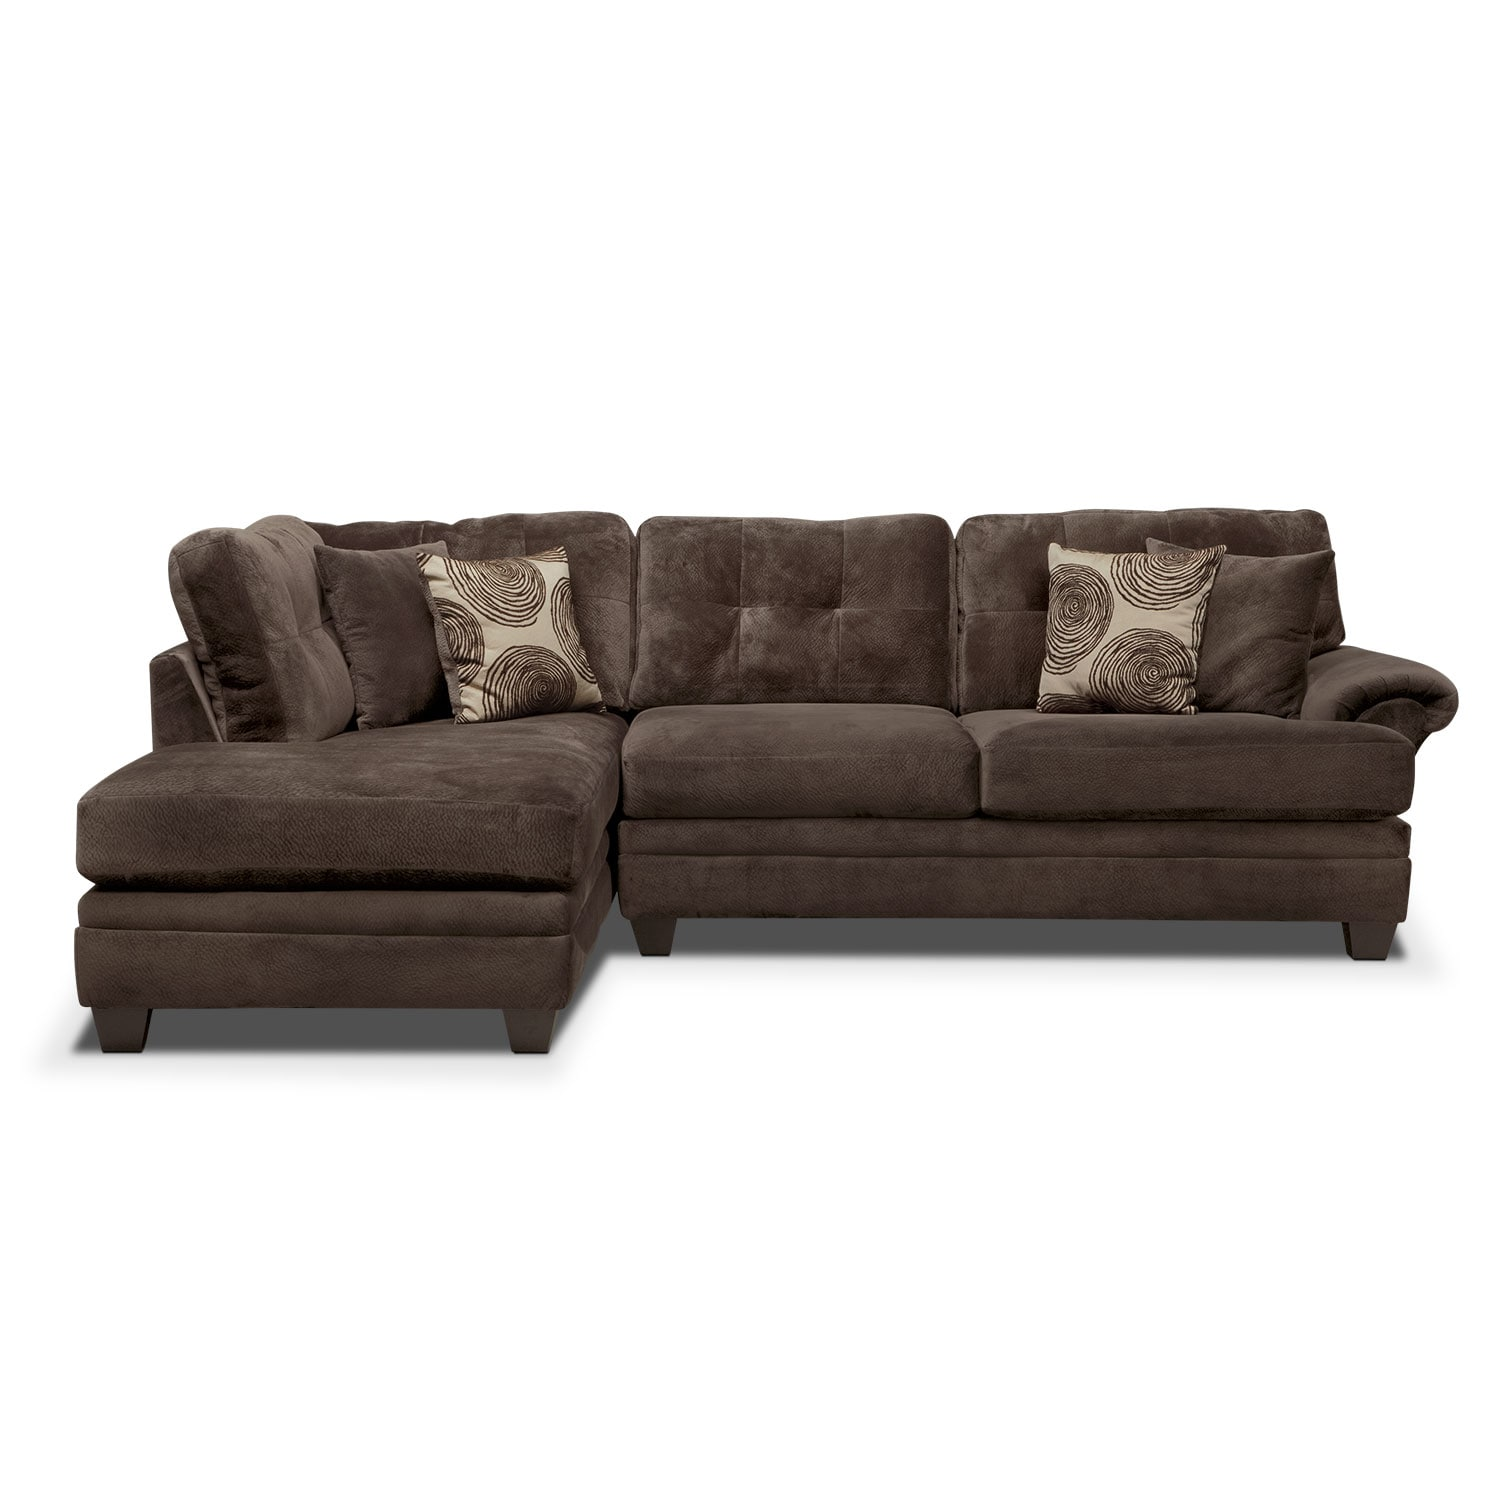 cordelle 2 piece sectional with left facing chaise. Black Bedroom Furniture Sets. Home Design Ideas